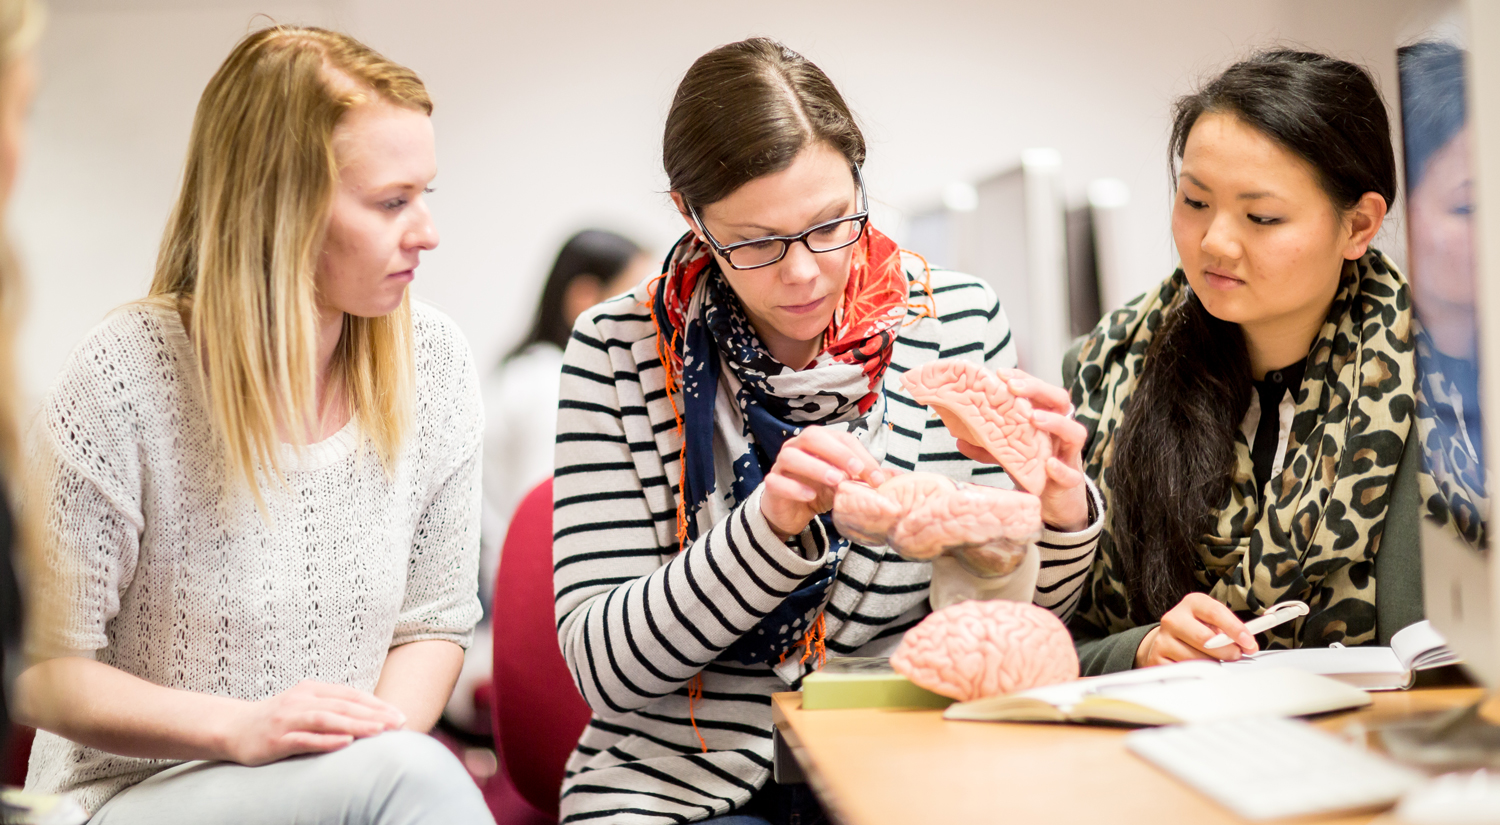 Professor Silke Paulmann from the Department of Psychology is sitting in the middle of the shot with a plastic model of the human brain which is partially taken apart. A student is sitting either side of her, looking at something she is pointing at on the model.